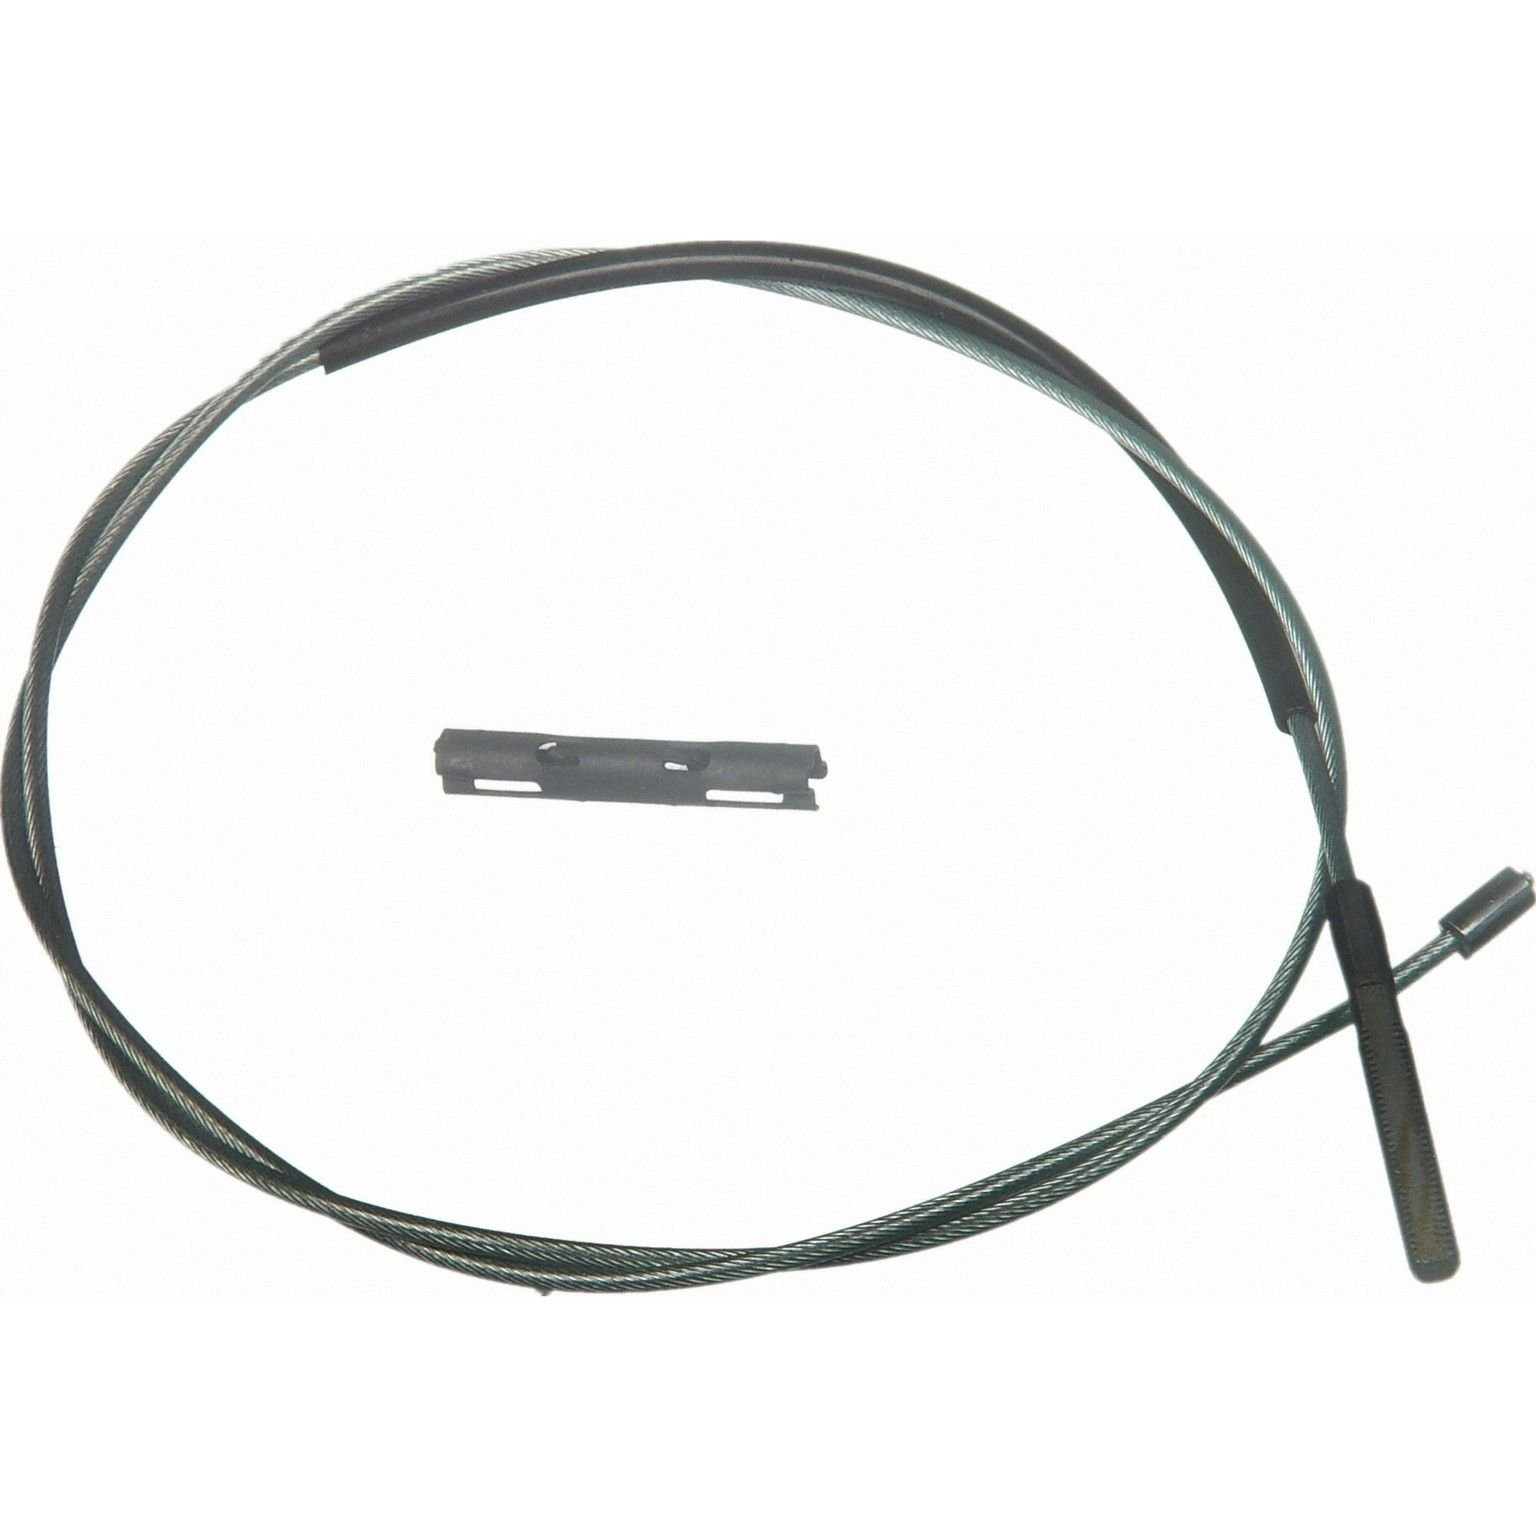 Gmc Sierra 1500 Parking Brake Cable Replacement Dorman Wagner 1966 Wiring Rpo 2002 Intermediate Brakes Bc140237 51 Length